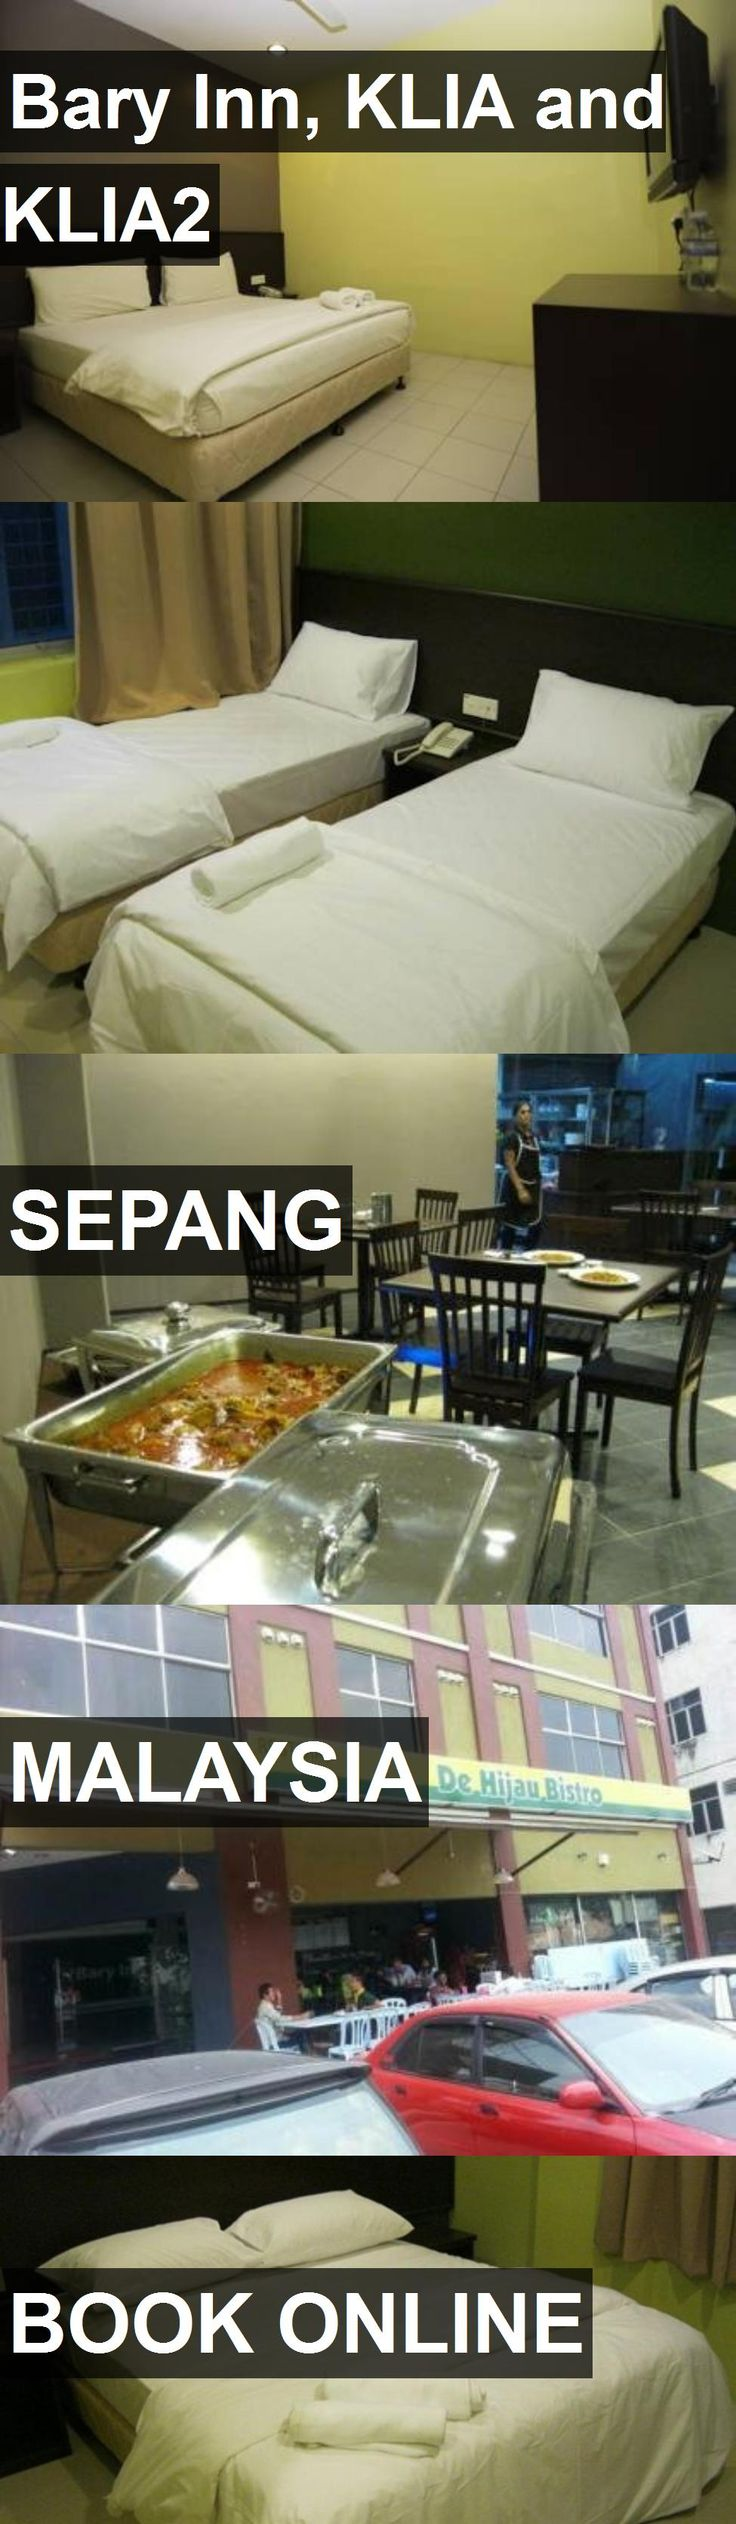 Hotel Bary Inn, KLIA and KLIA2 in Sepang, Malaysia. For more information, photos, reviews and best prices please follow the link. #Malaysia #Sepang #travel #vacation #hotel